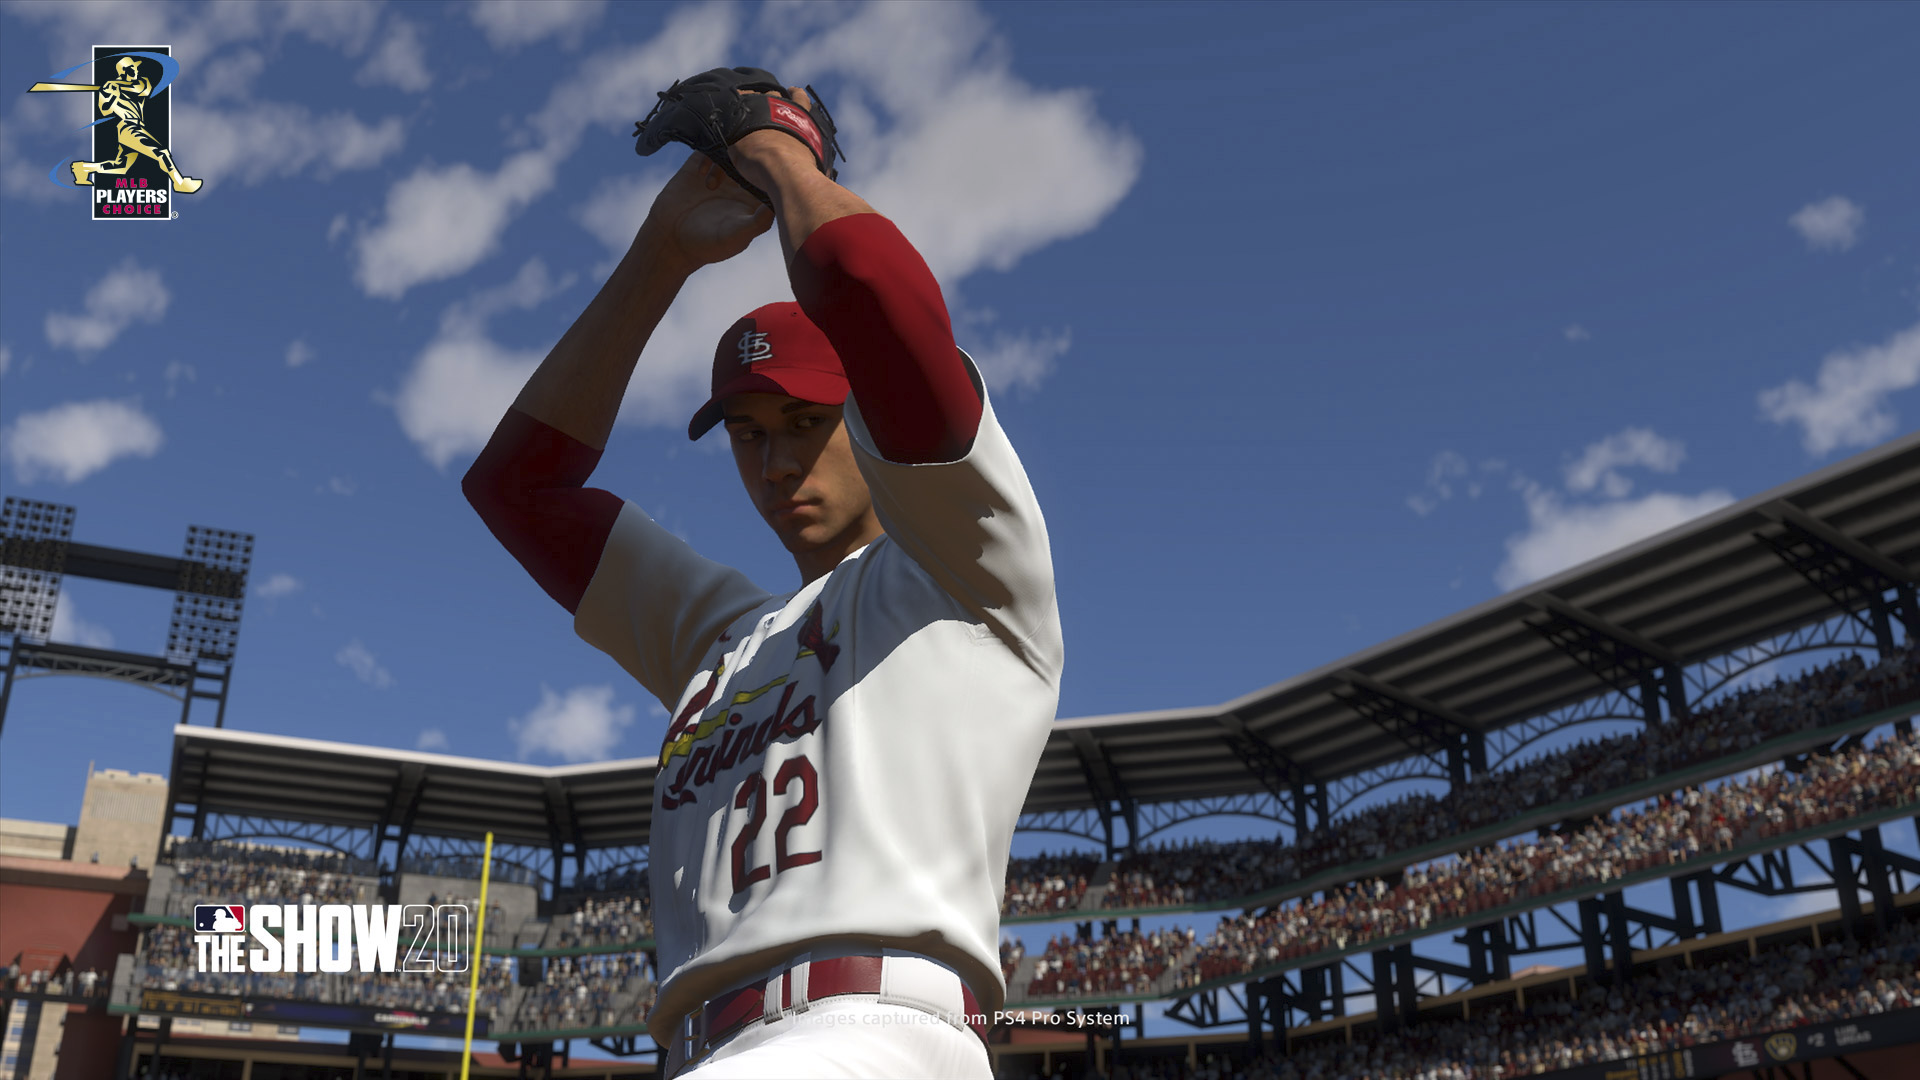 Captura de pantalla 5 de MLB The Show 20